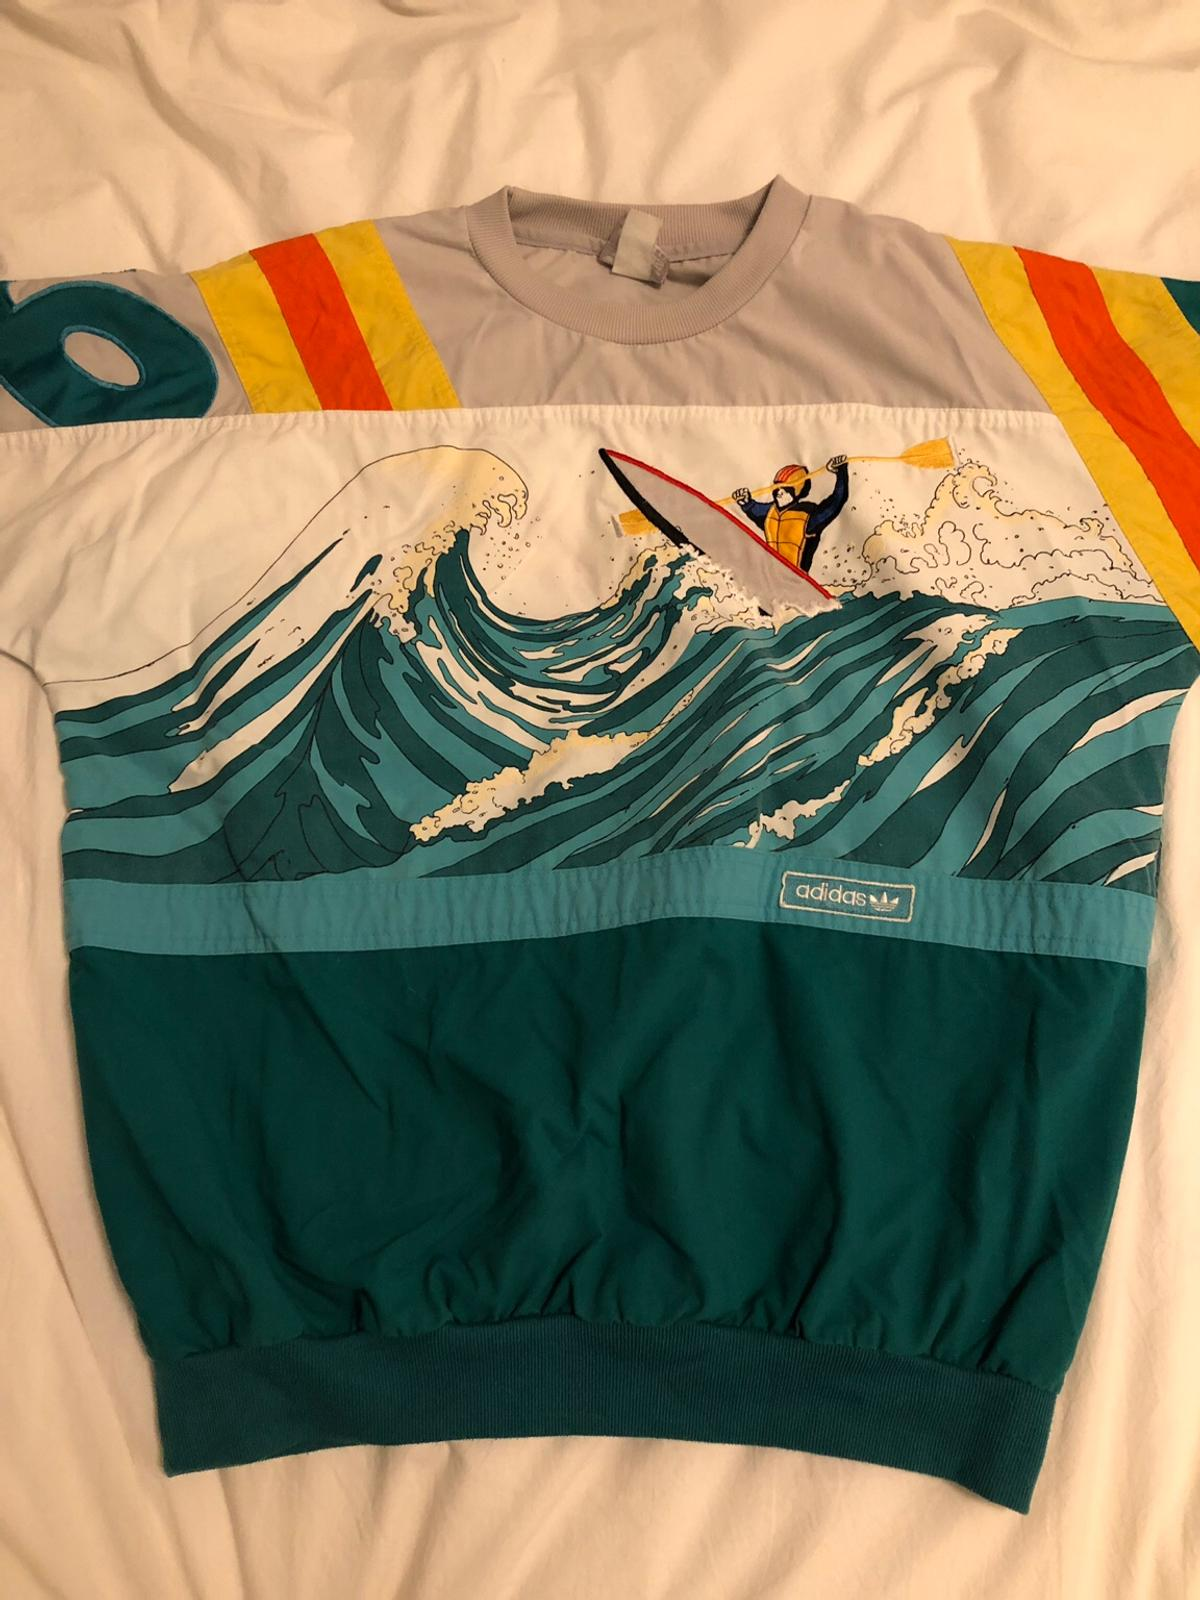 Vintage Adidas crewneck in 40215 Düsseldorf for ?120.00 for